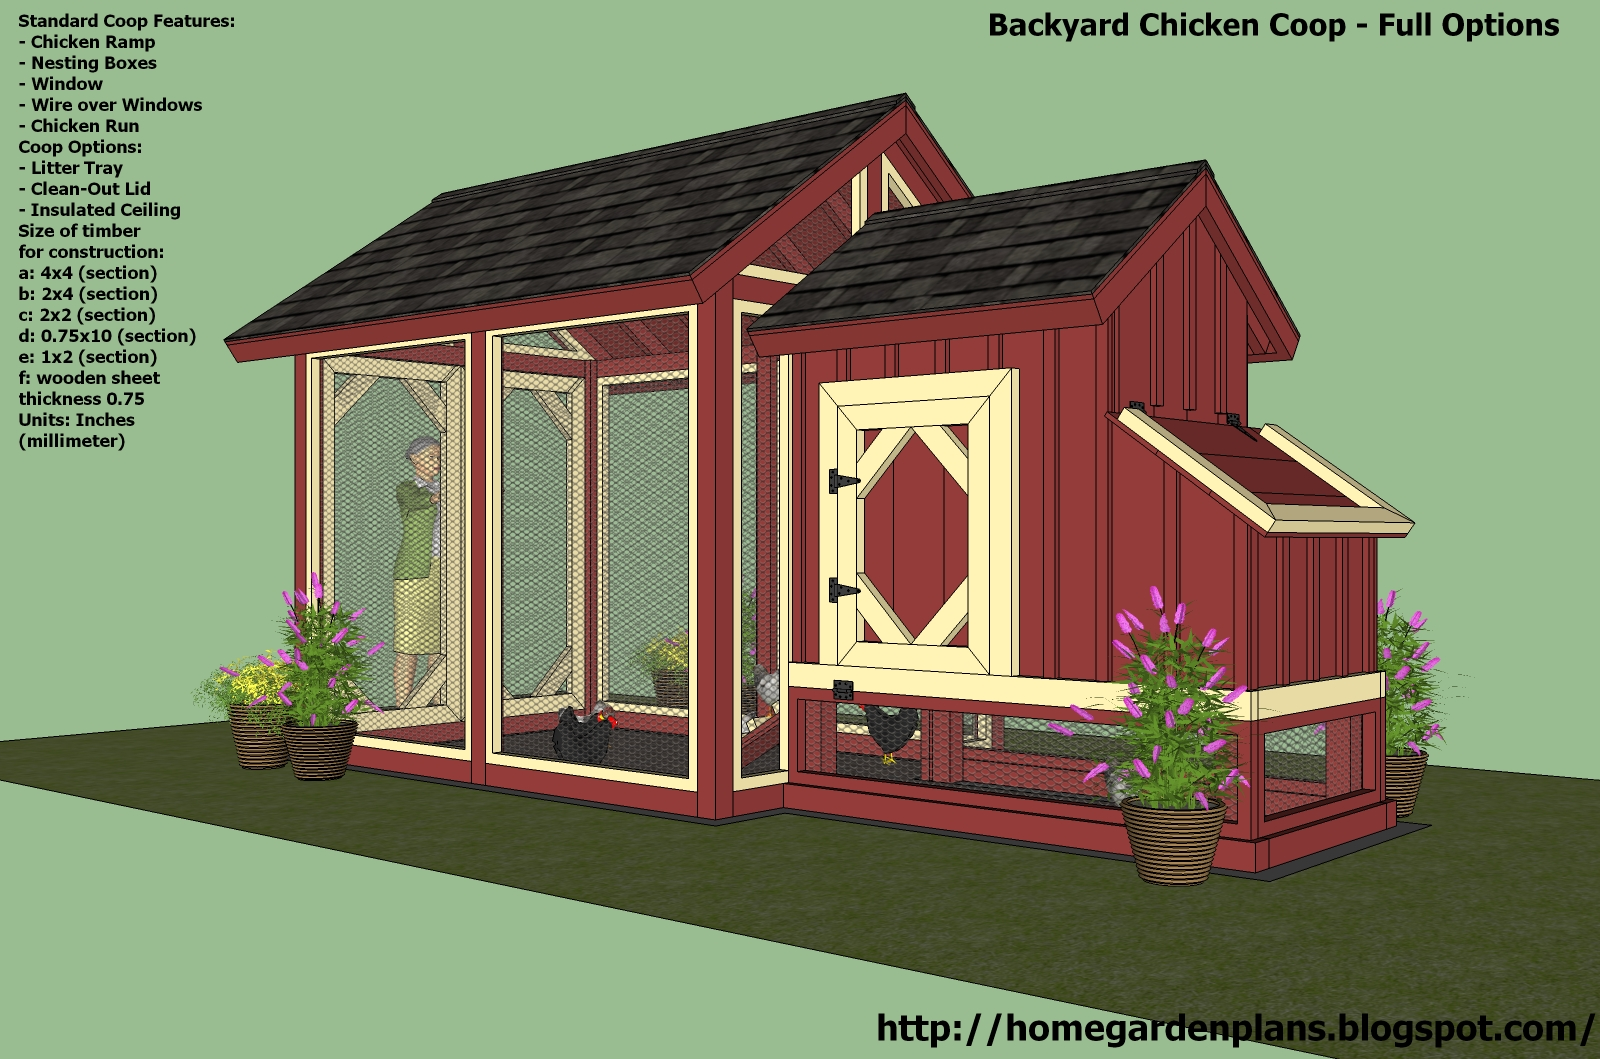 S101 - Chicken Coop Plans Construction - Chicken Coop Design - How To